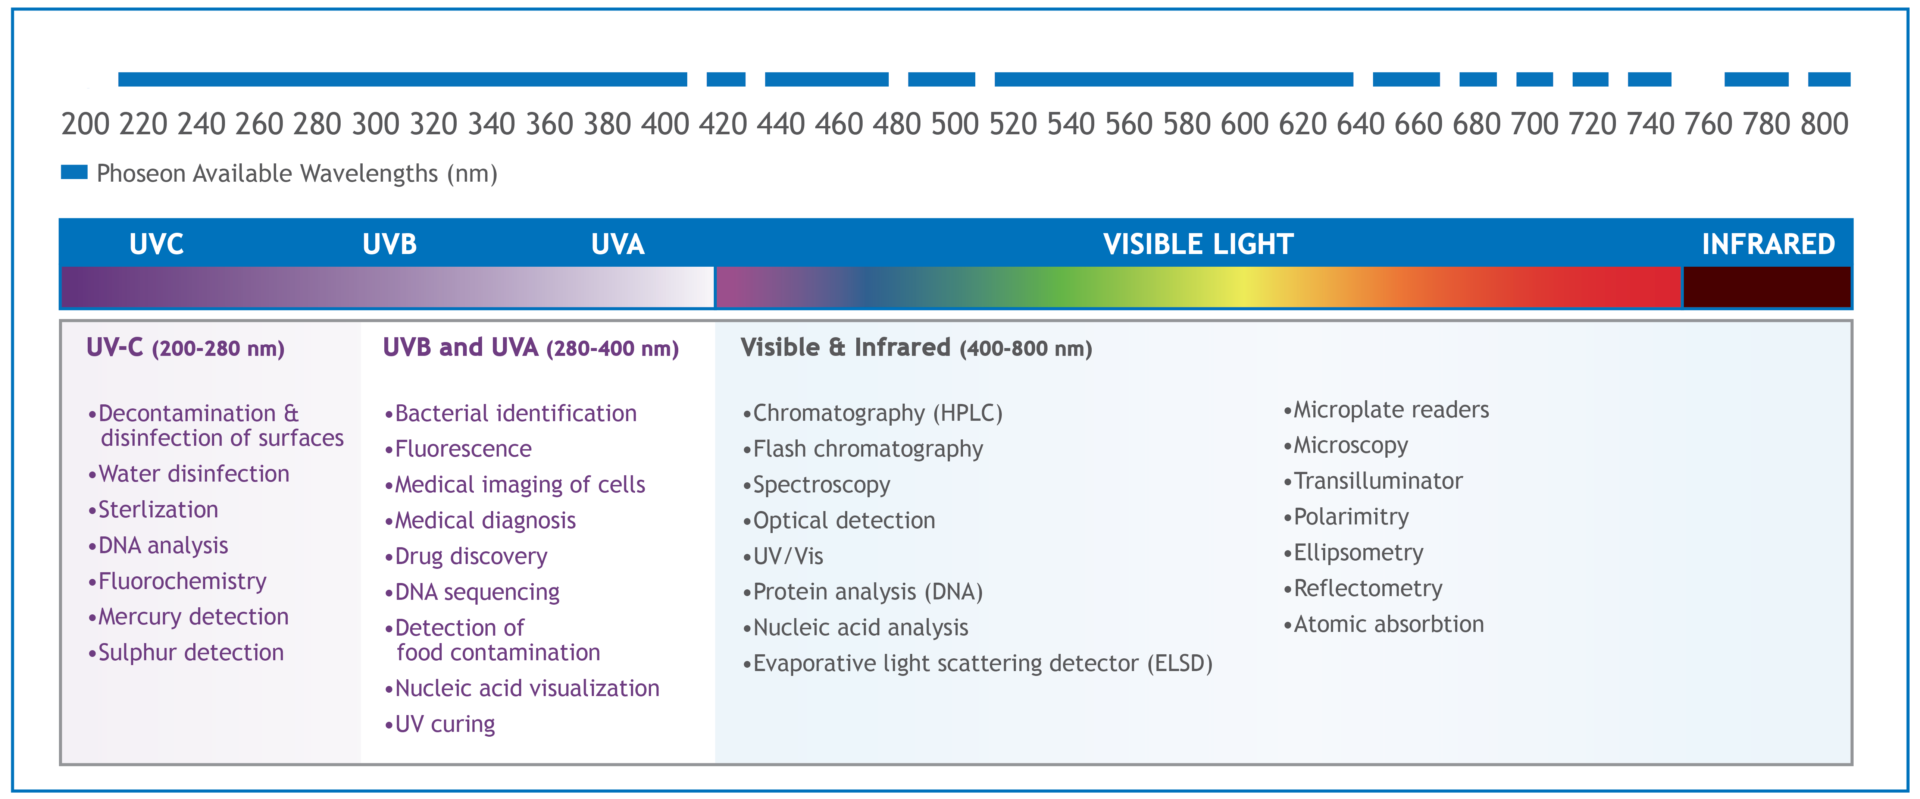 Available UV Wavelengths and Applications from Phoseon Technology